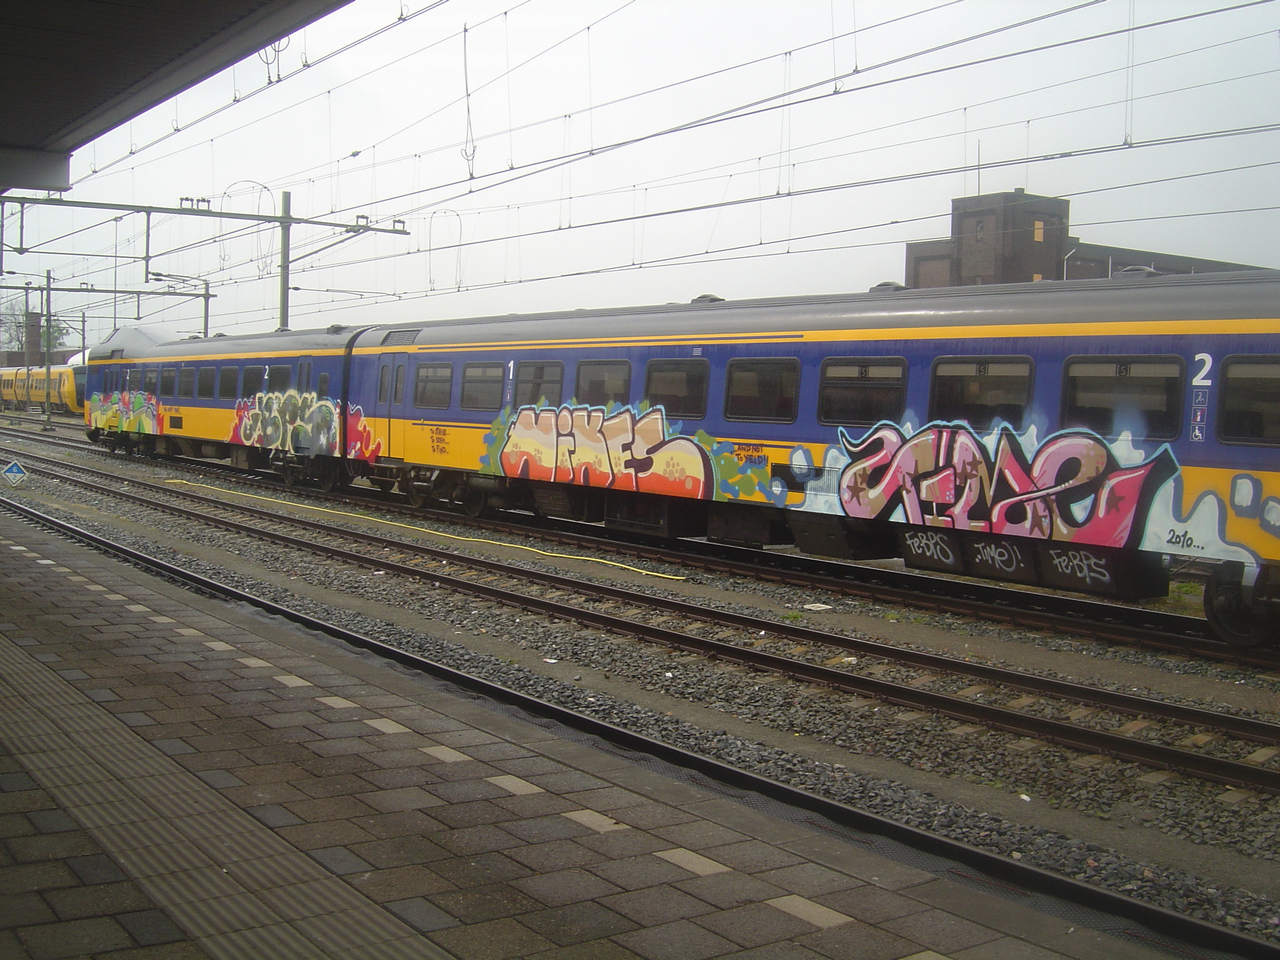 Art Crimes: Trains 326 - European Passenger Trains